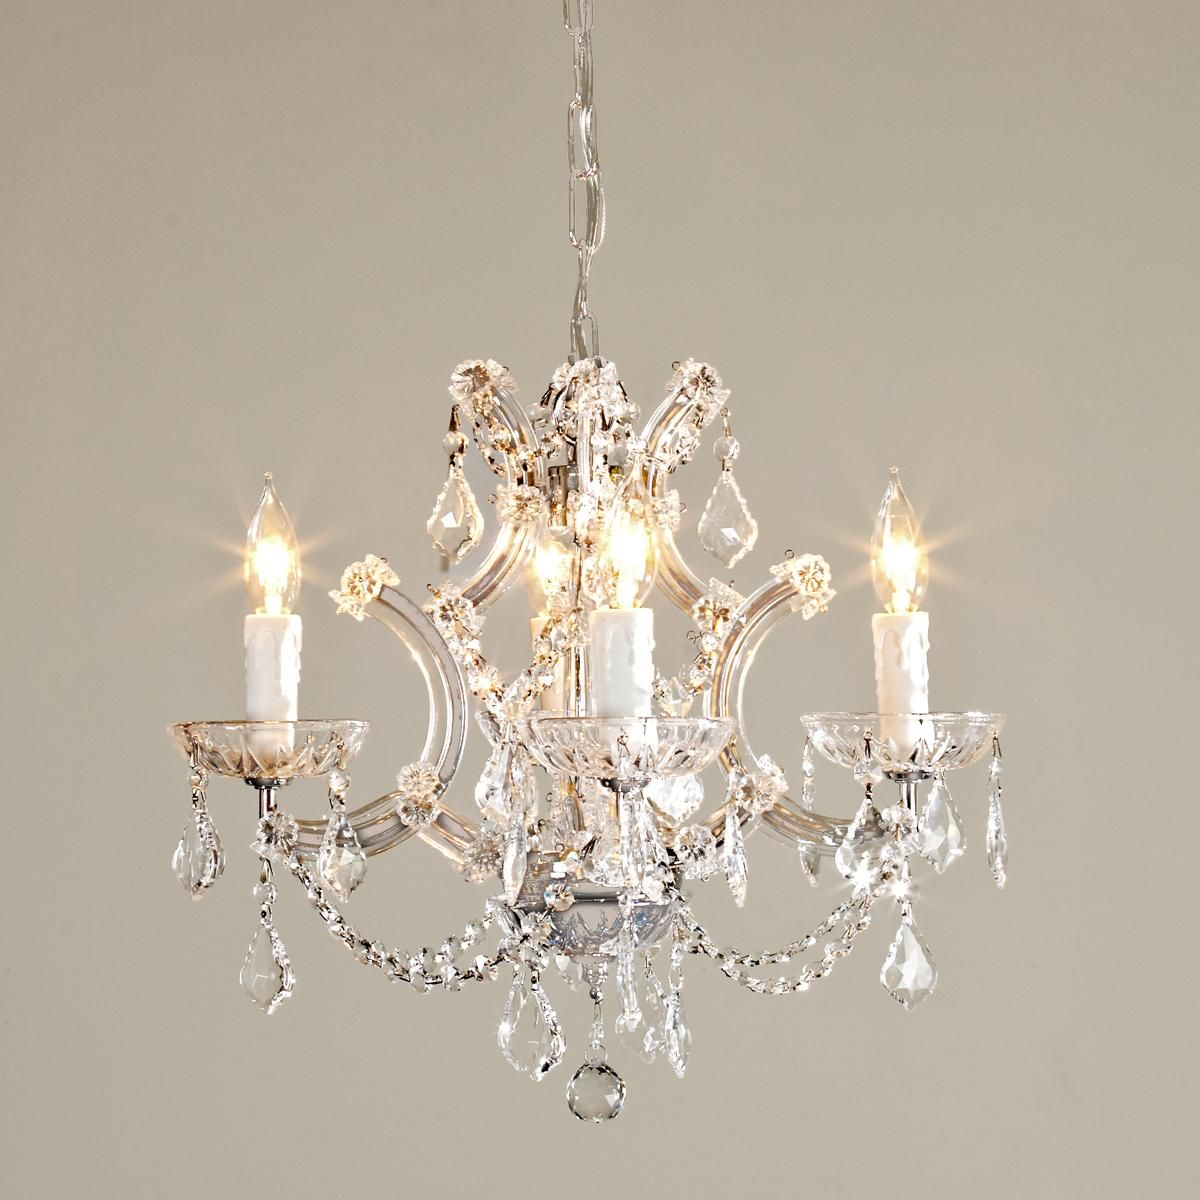 Round crystal chandelier l d gerber chandelier bedroom - Small crystal chandelier for bathroom ...